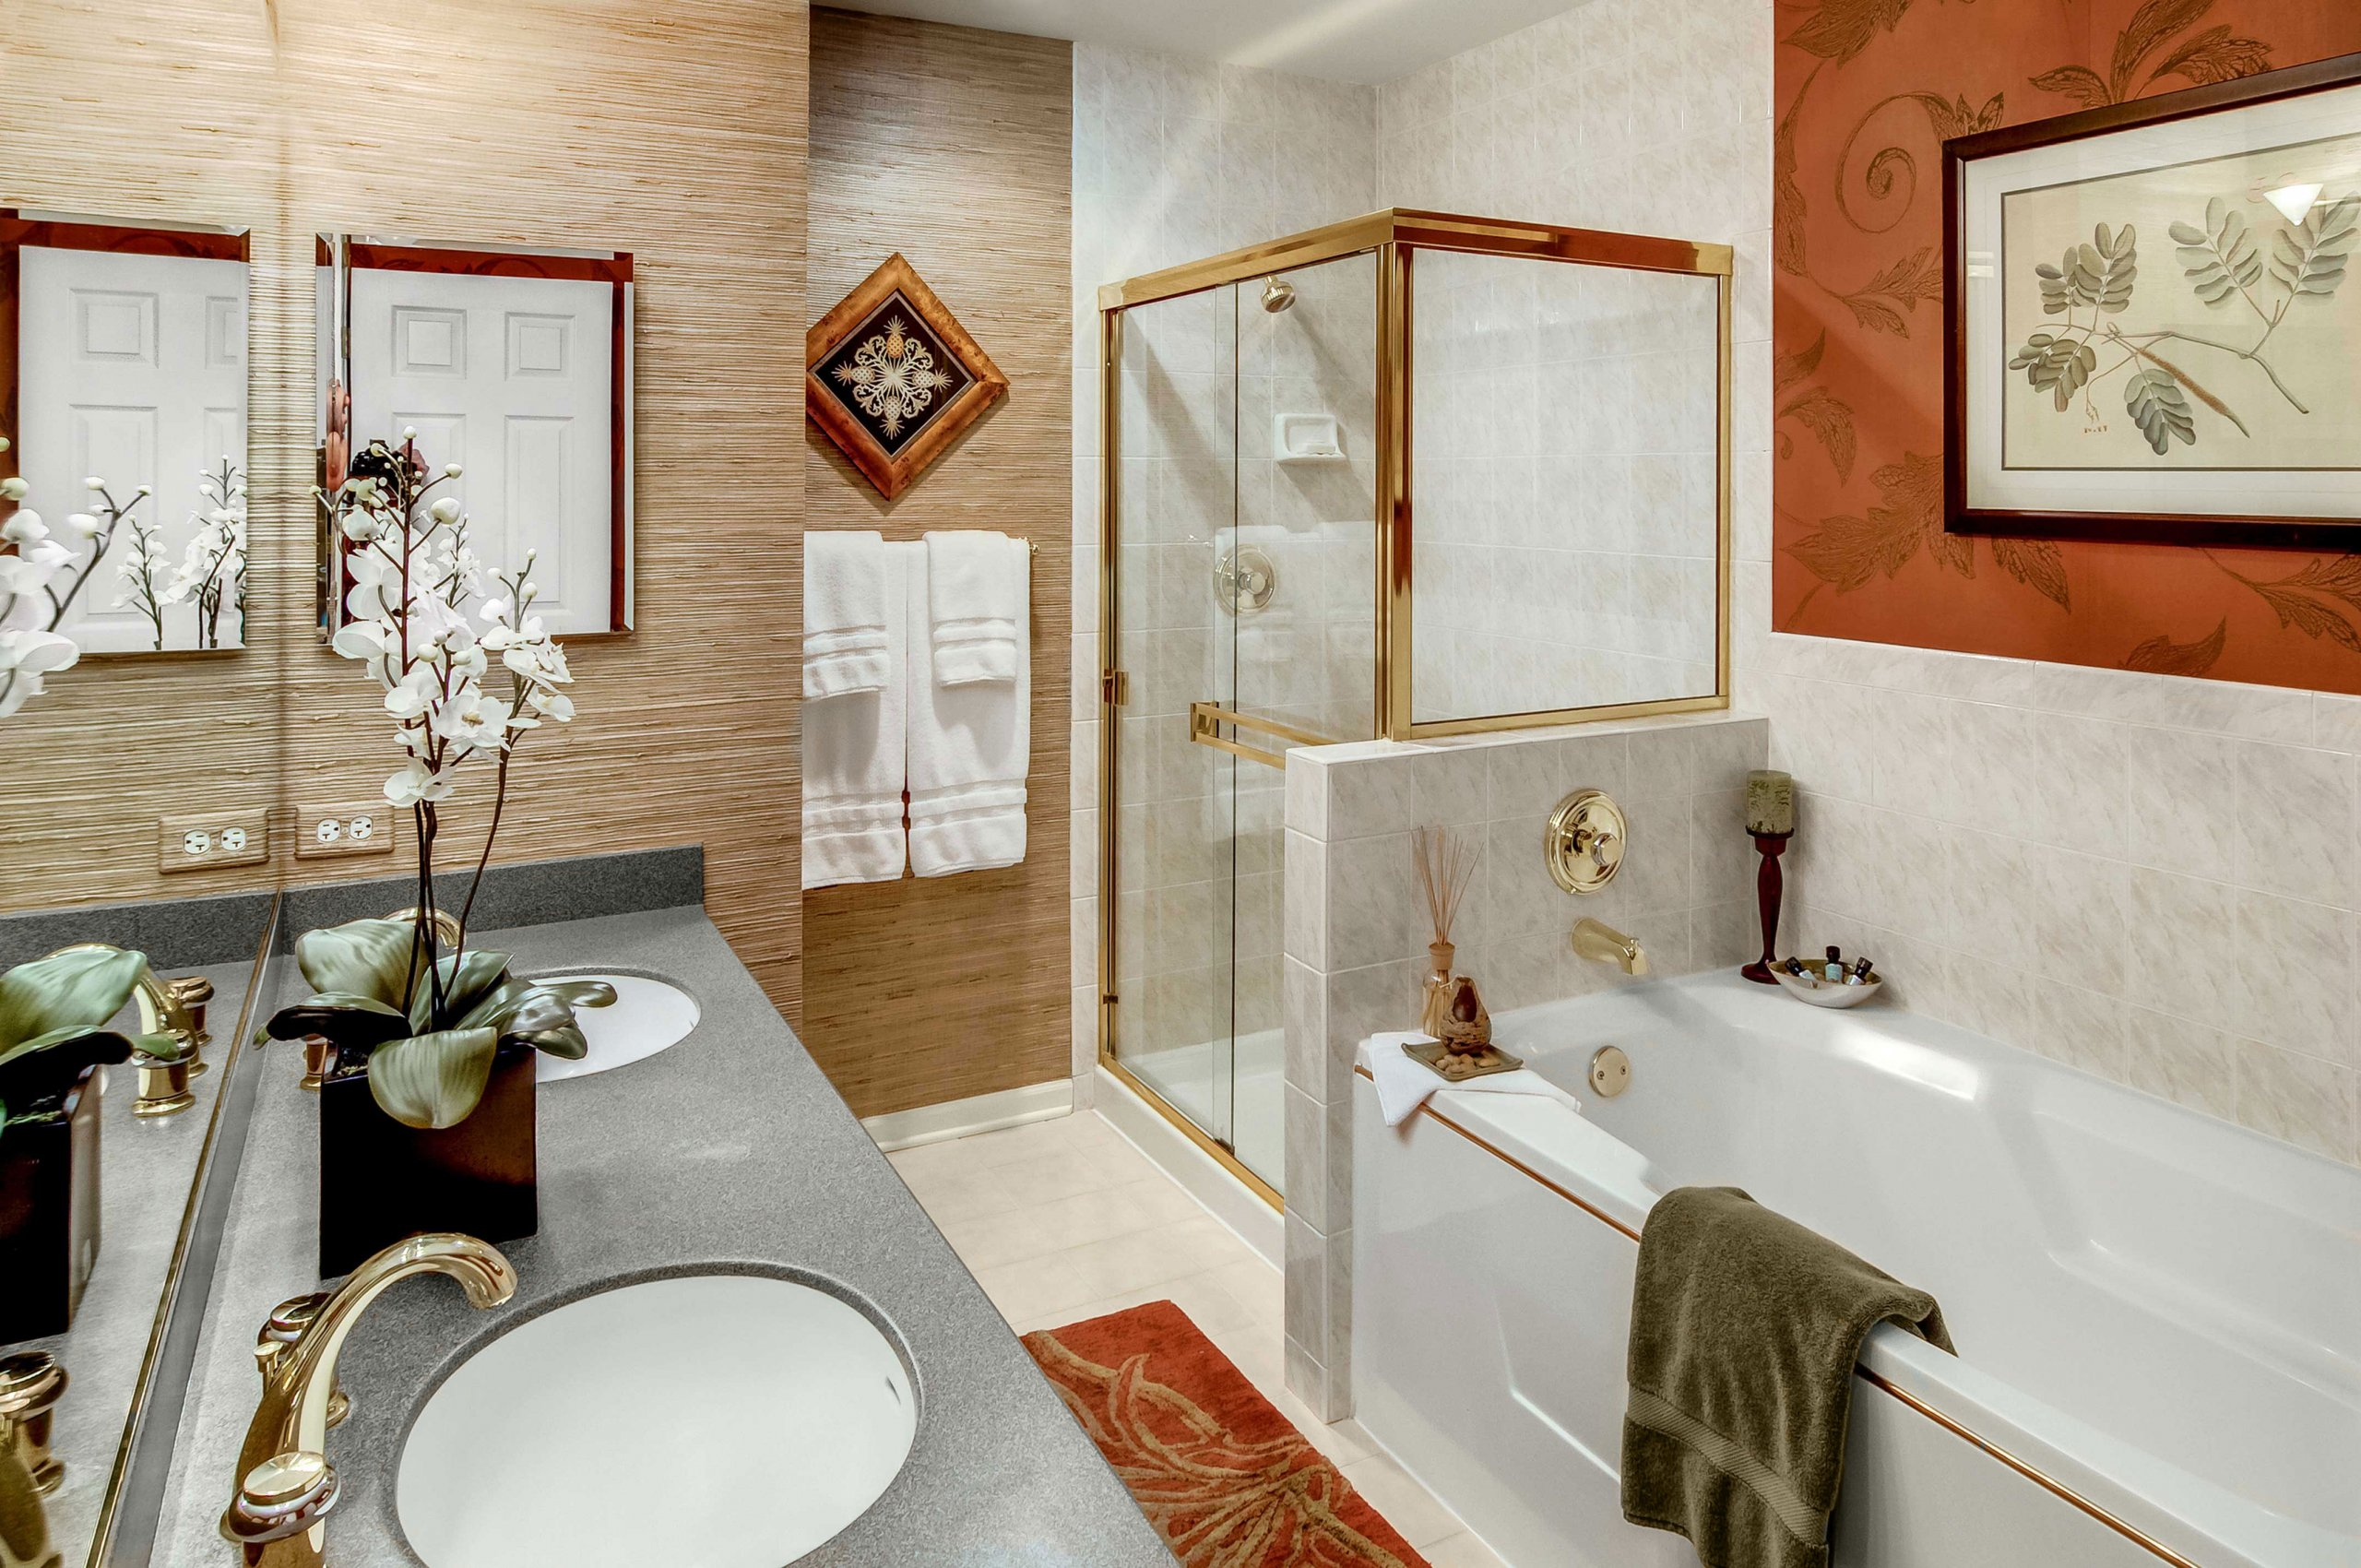 Bathroom in rust color with gold fixtures